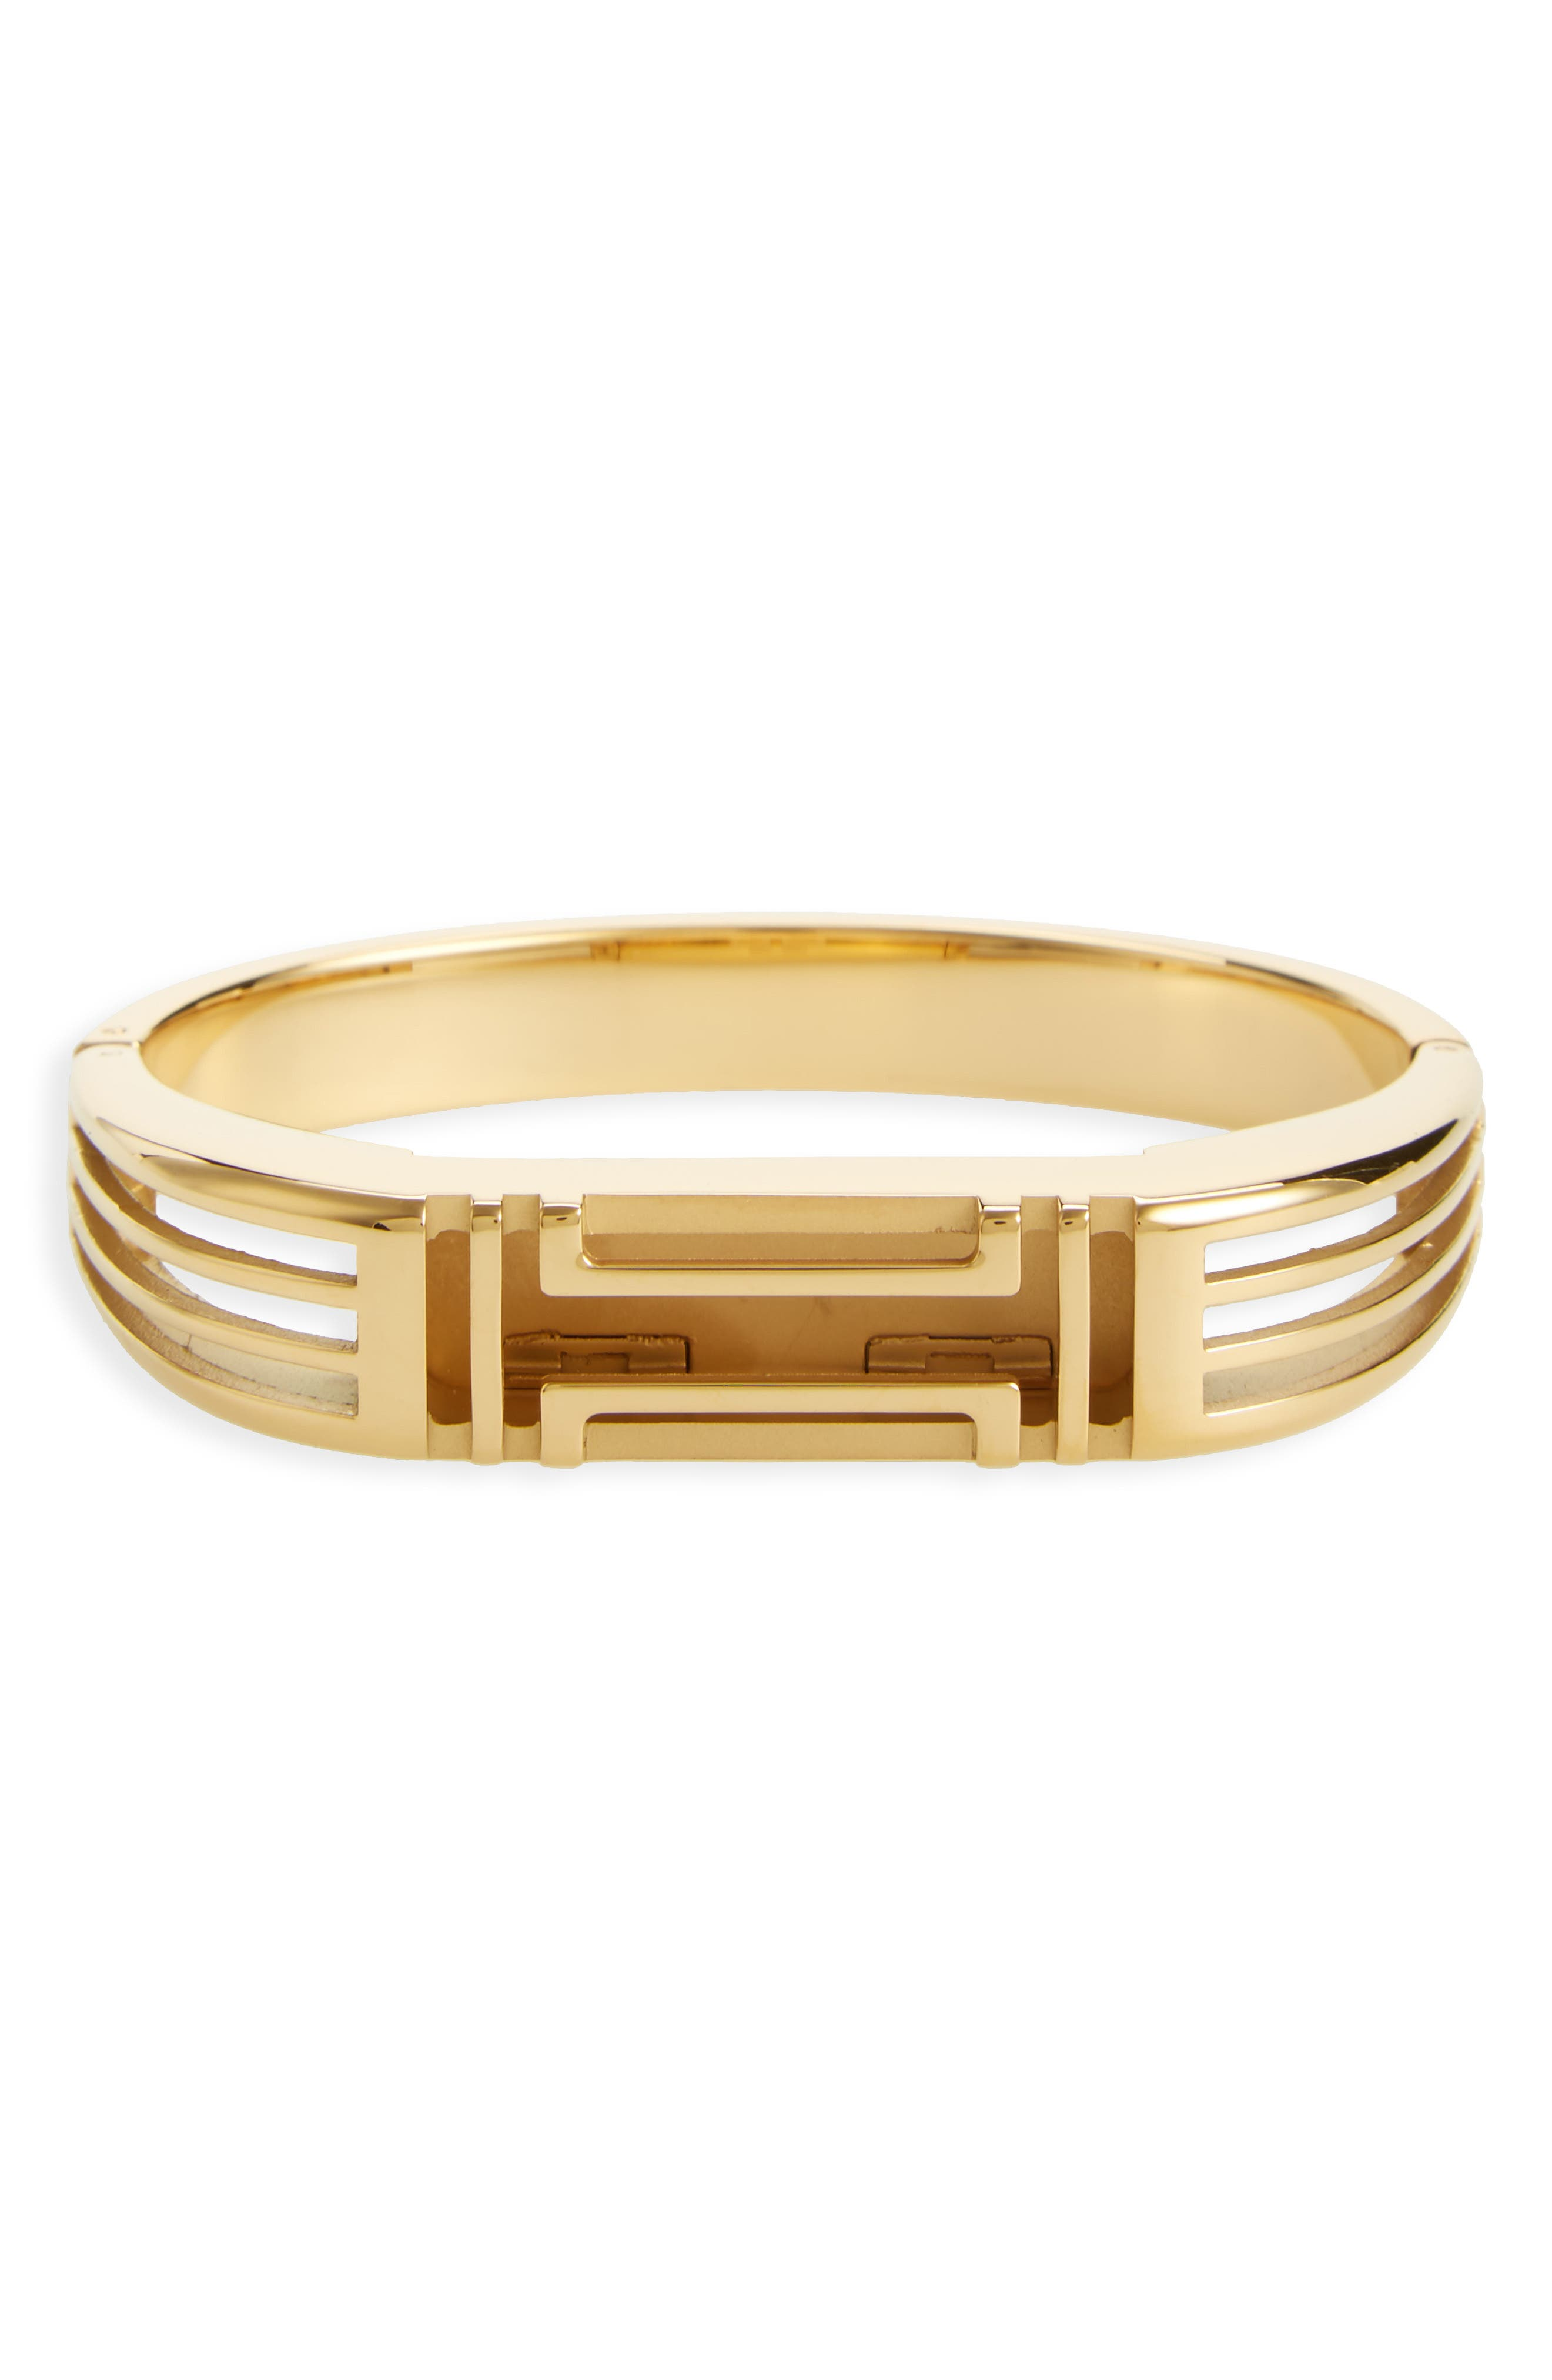 Tory Burch for Fitbit® Hinge Bracelet